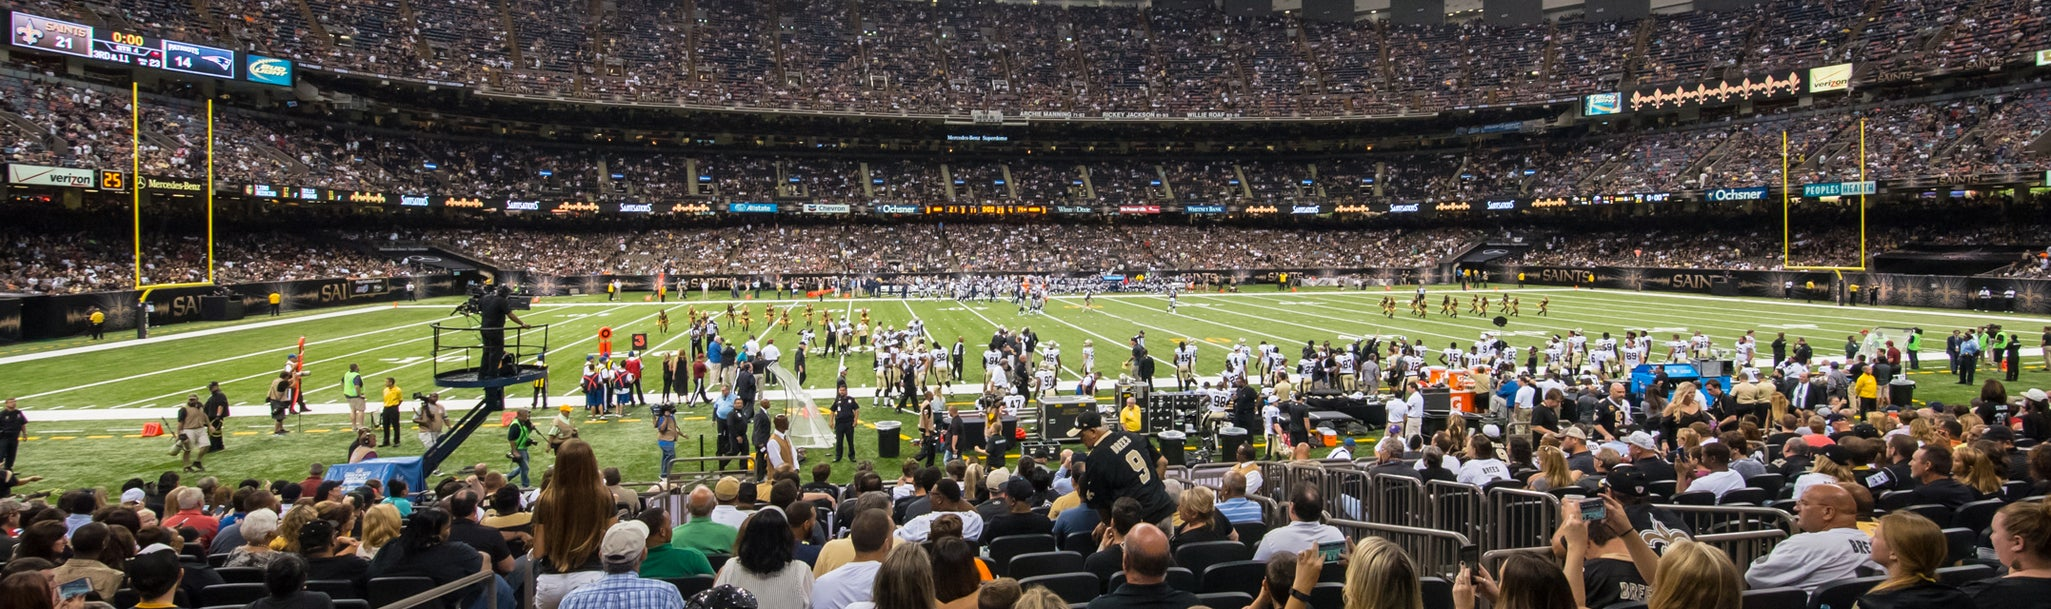 Seat view from Bunker Club Sideline